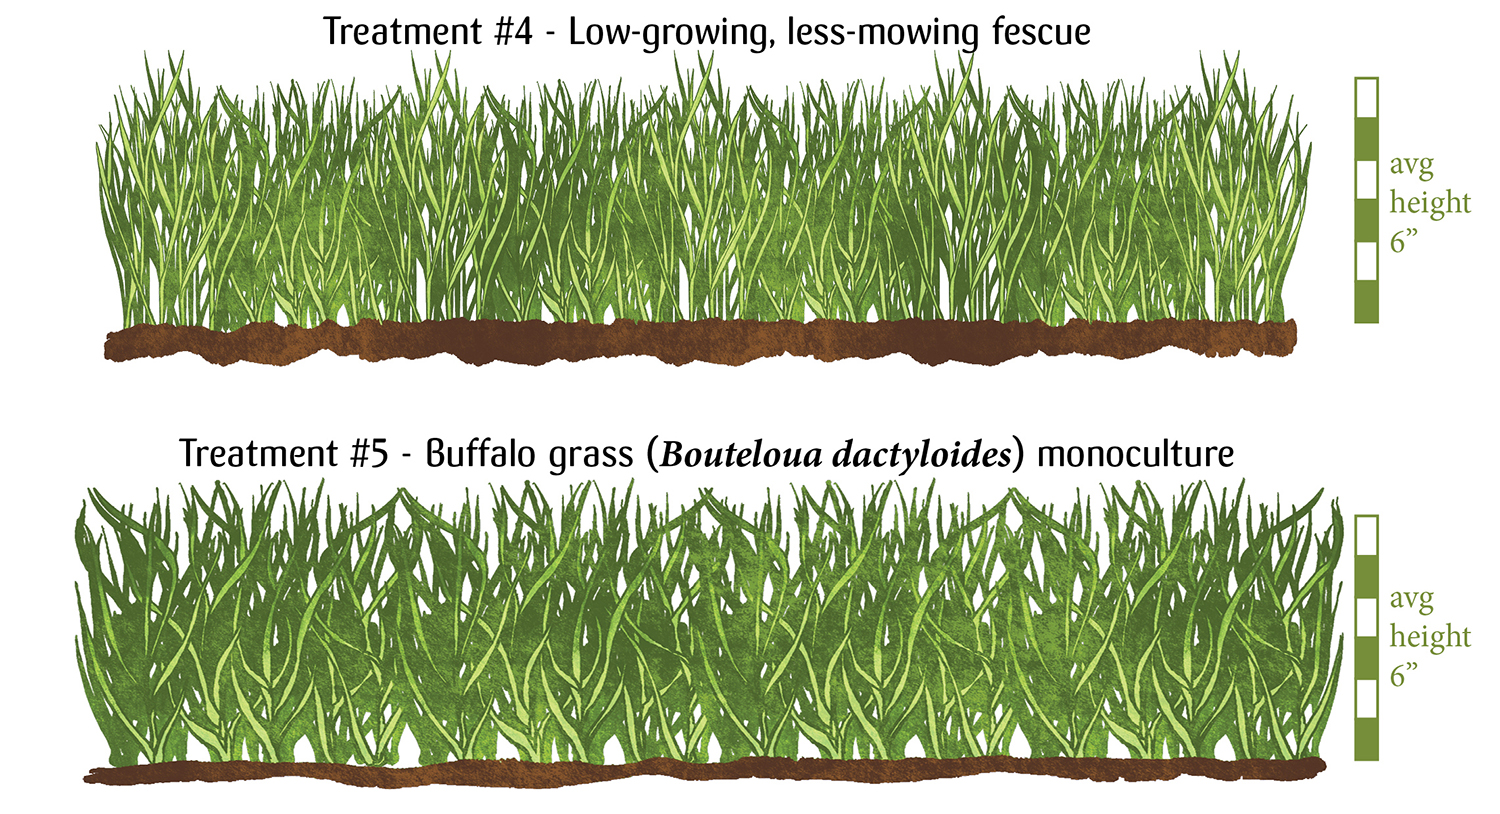 """Image: Treatment #4 - Low growing, less mowing fescue. A thinner, denser grass that averages at 6"""" Treatment #5 - buffalo grass (bouteloua dactyloides) monoculture. A chunkier, denser, bluer grass averaging 6"""" height."""